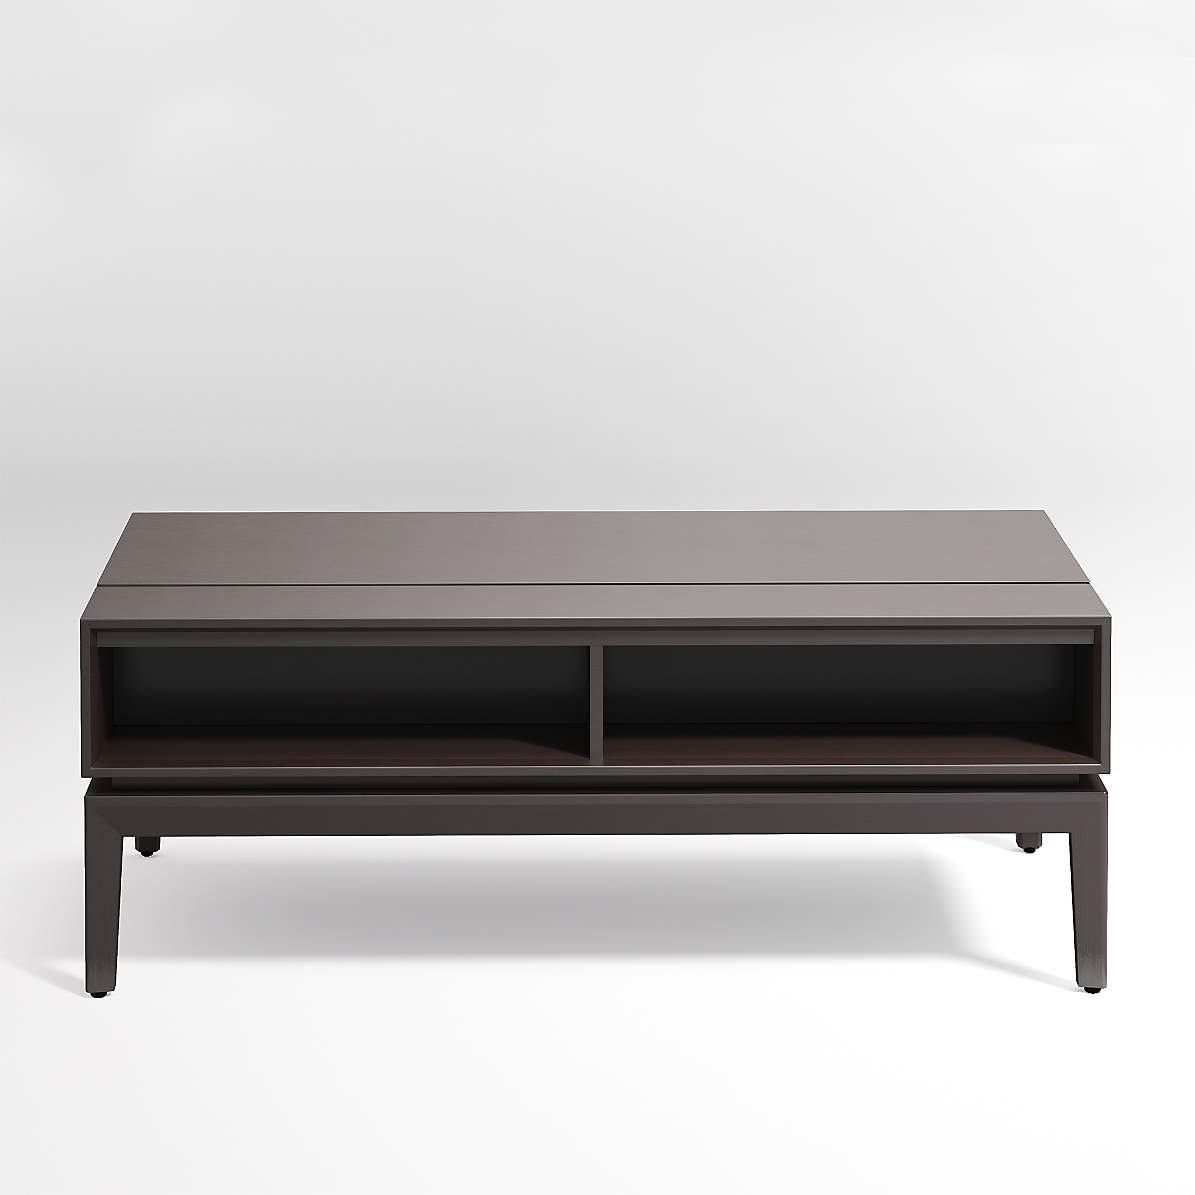 Huron Lift Top Coffee Table Reviews Crate And Barrel